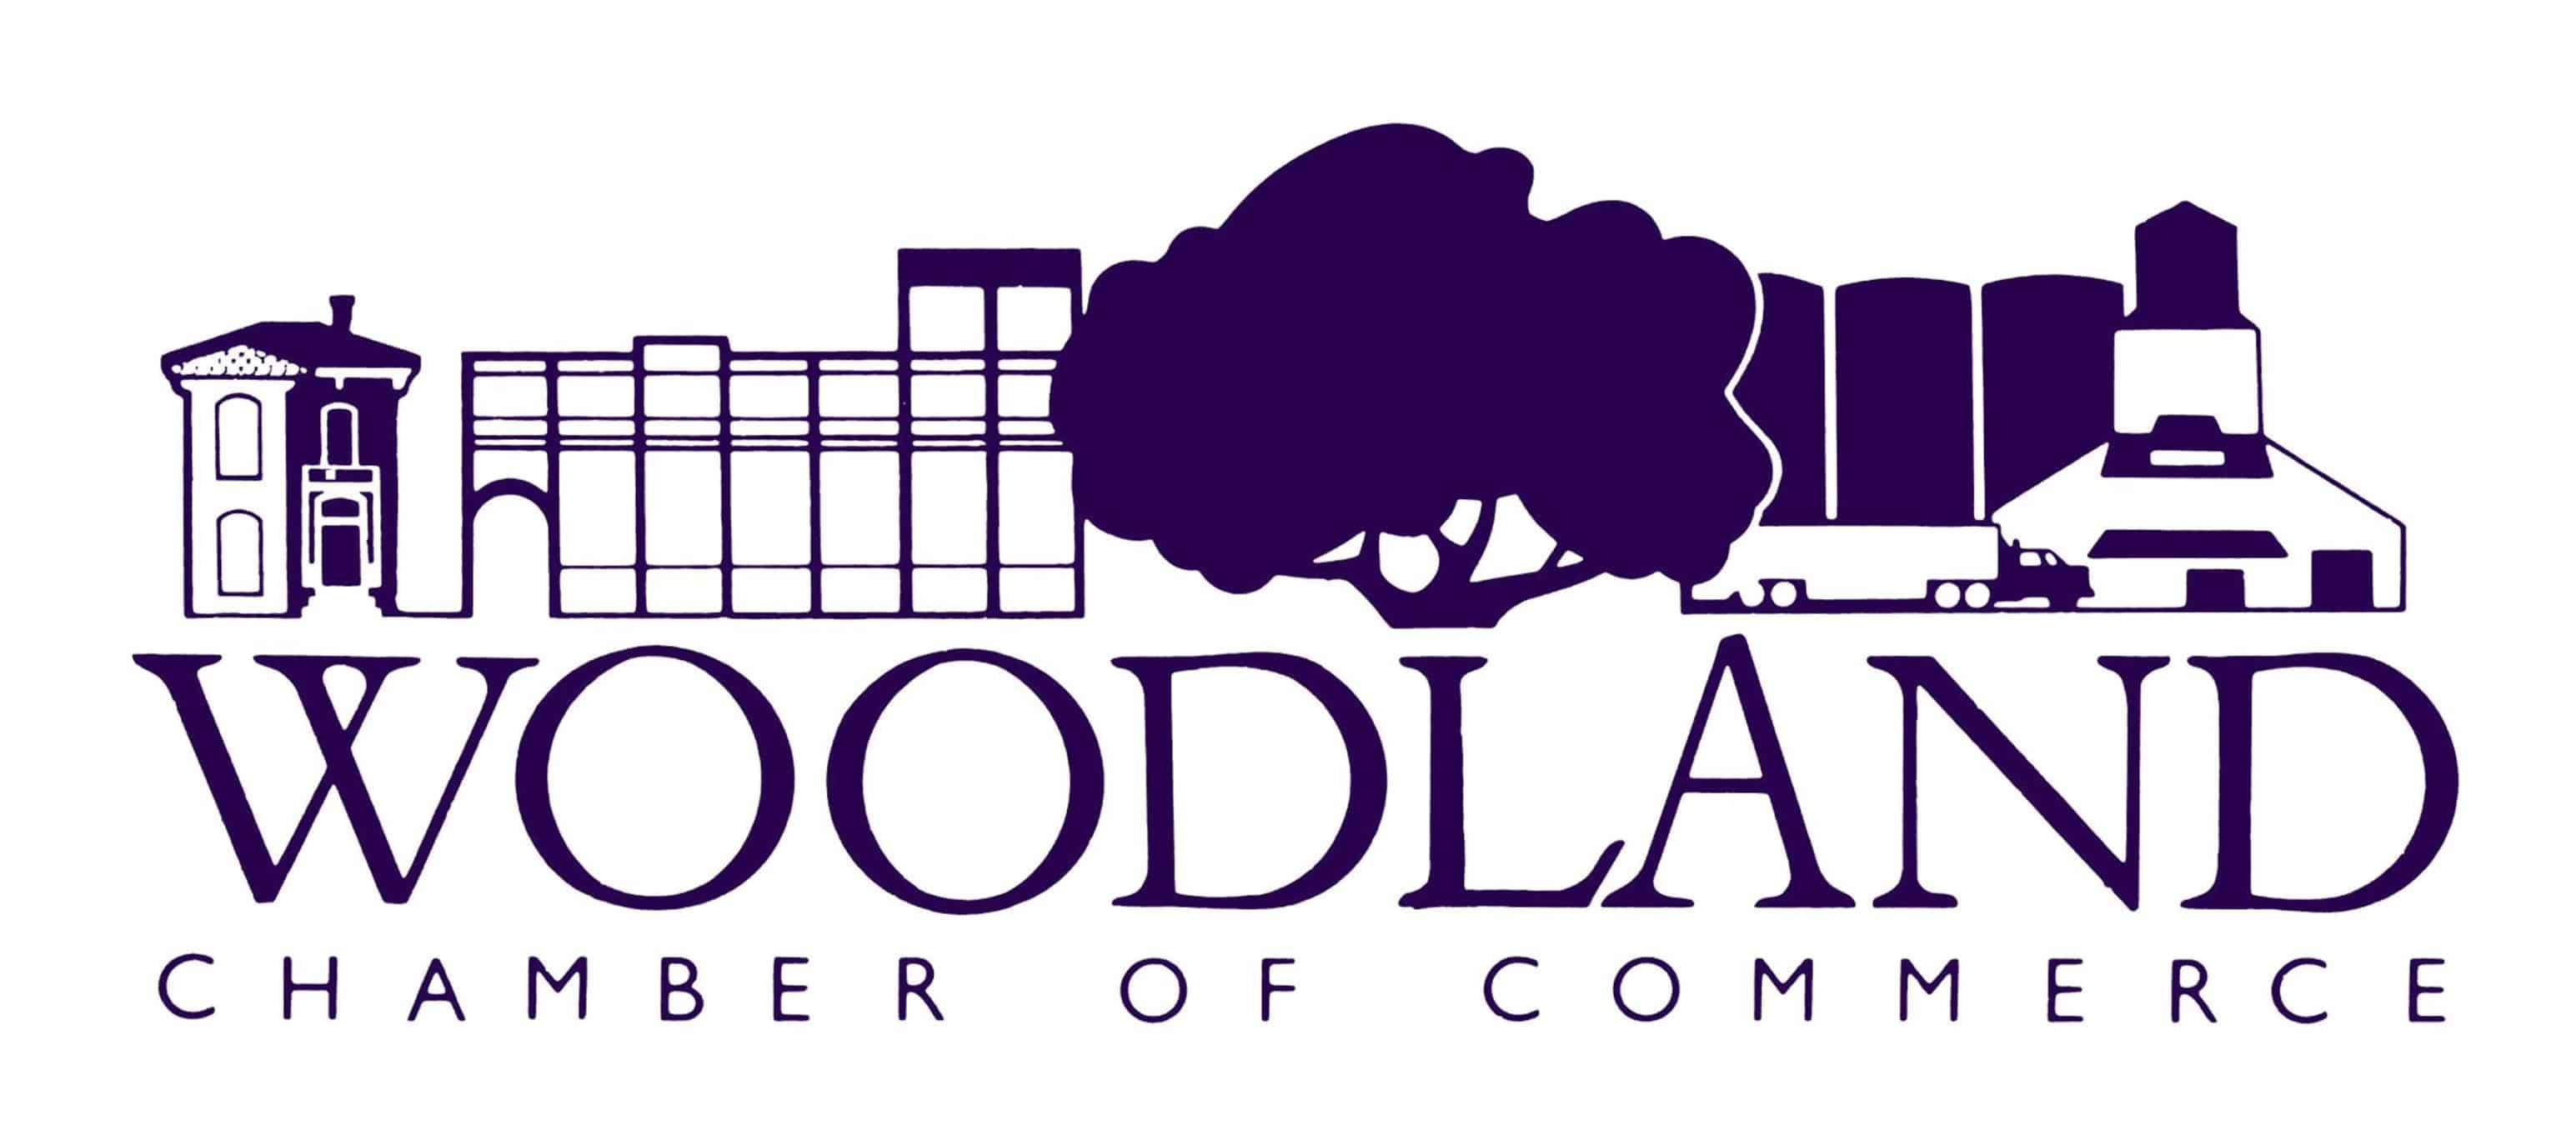 Our City of Woodland Chamber